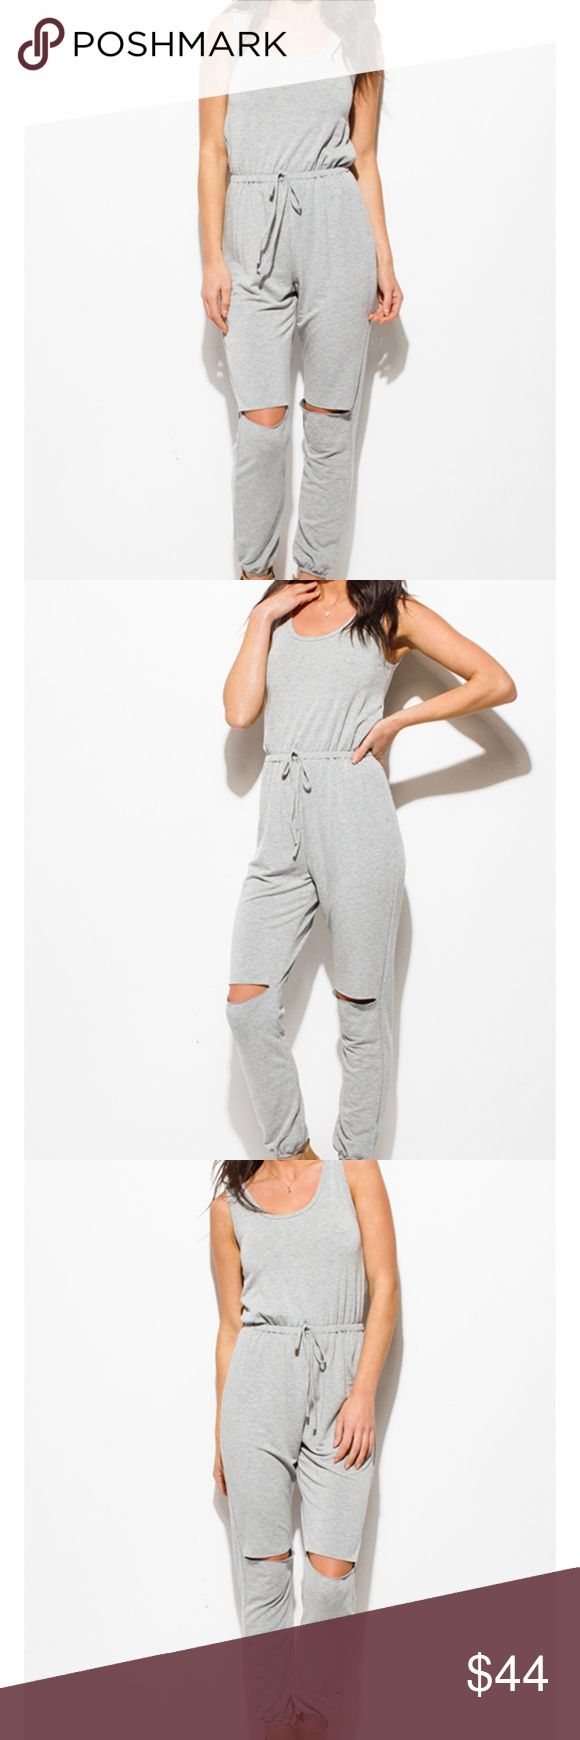 """🆕️🌟H. Grey Cut Out Jumpsuit 🌟 Kick back and relax in this! 50% Cotton 35% Rayon 5% Spandex Model is 5'9""""  Model is wearing exact product in size small New without tags  Price Firm unless bundled with another item Pants Jumpsuits & Rompers"""